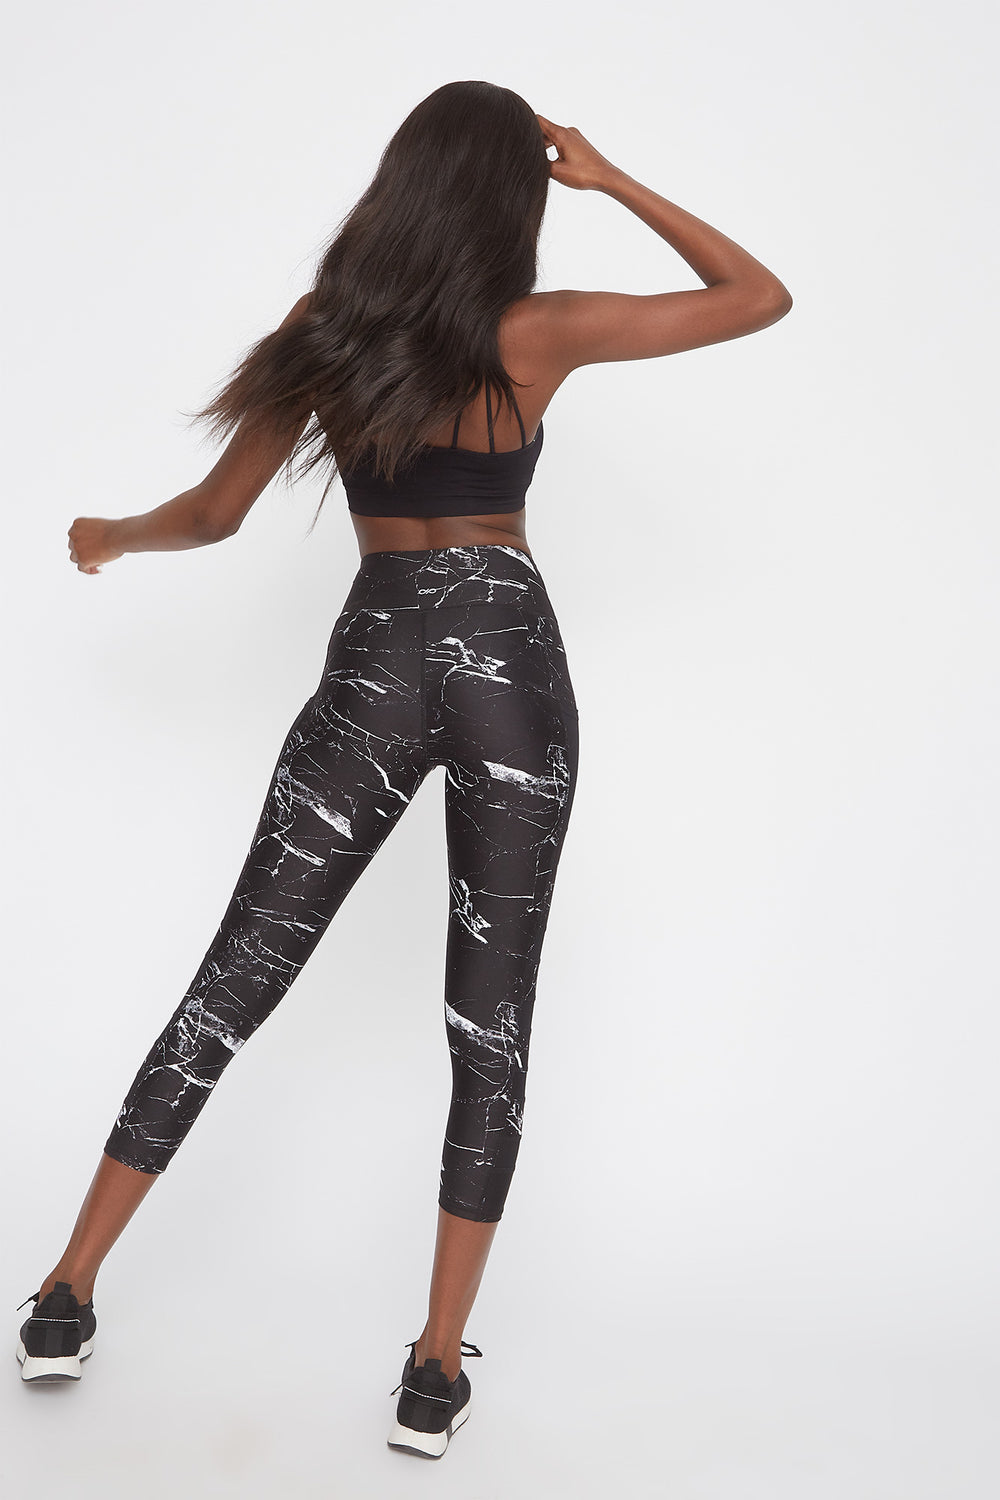 Infinite High-Rise Mesh Insert Cropped Legging Black with White